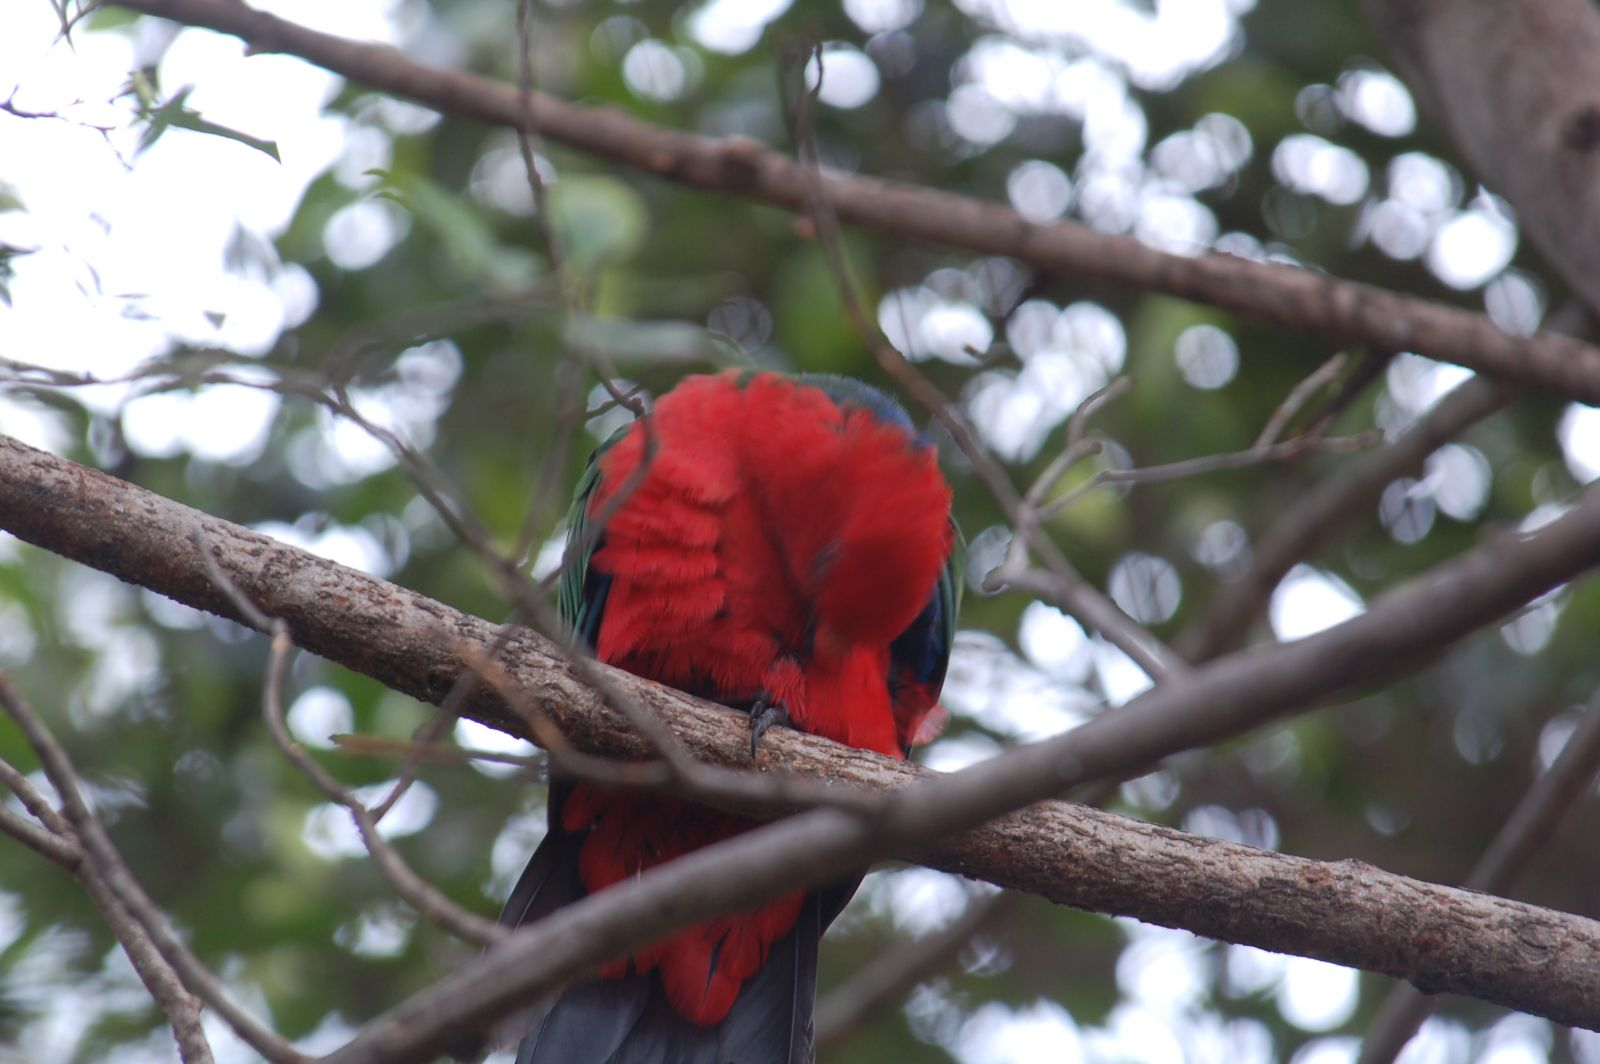 The king parrots examined